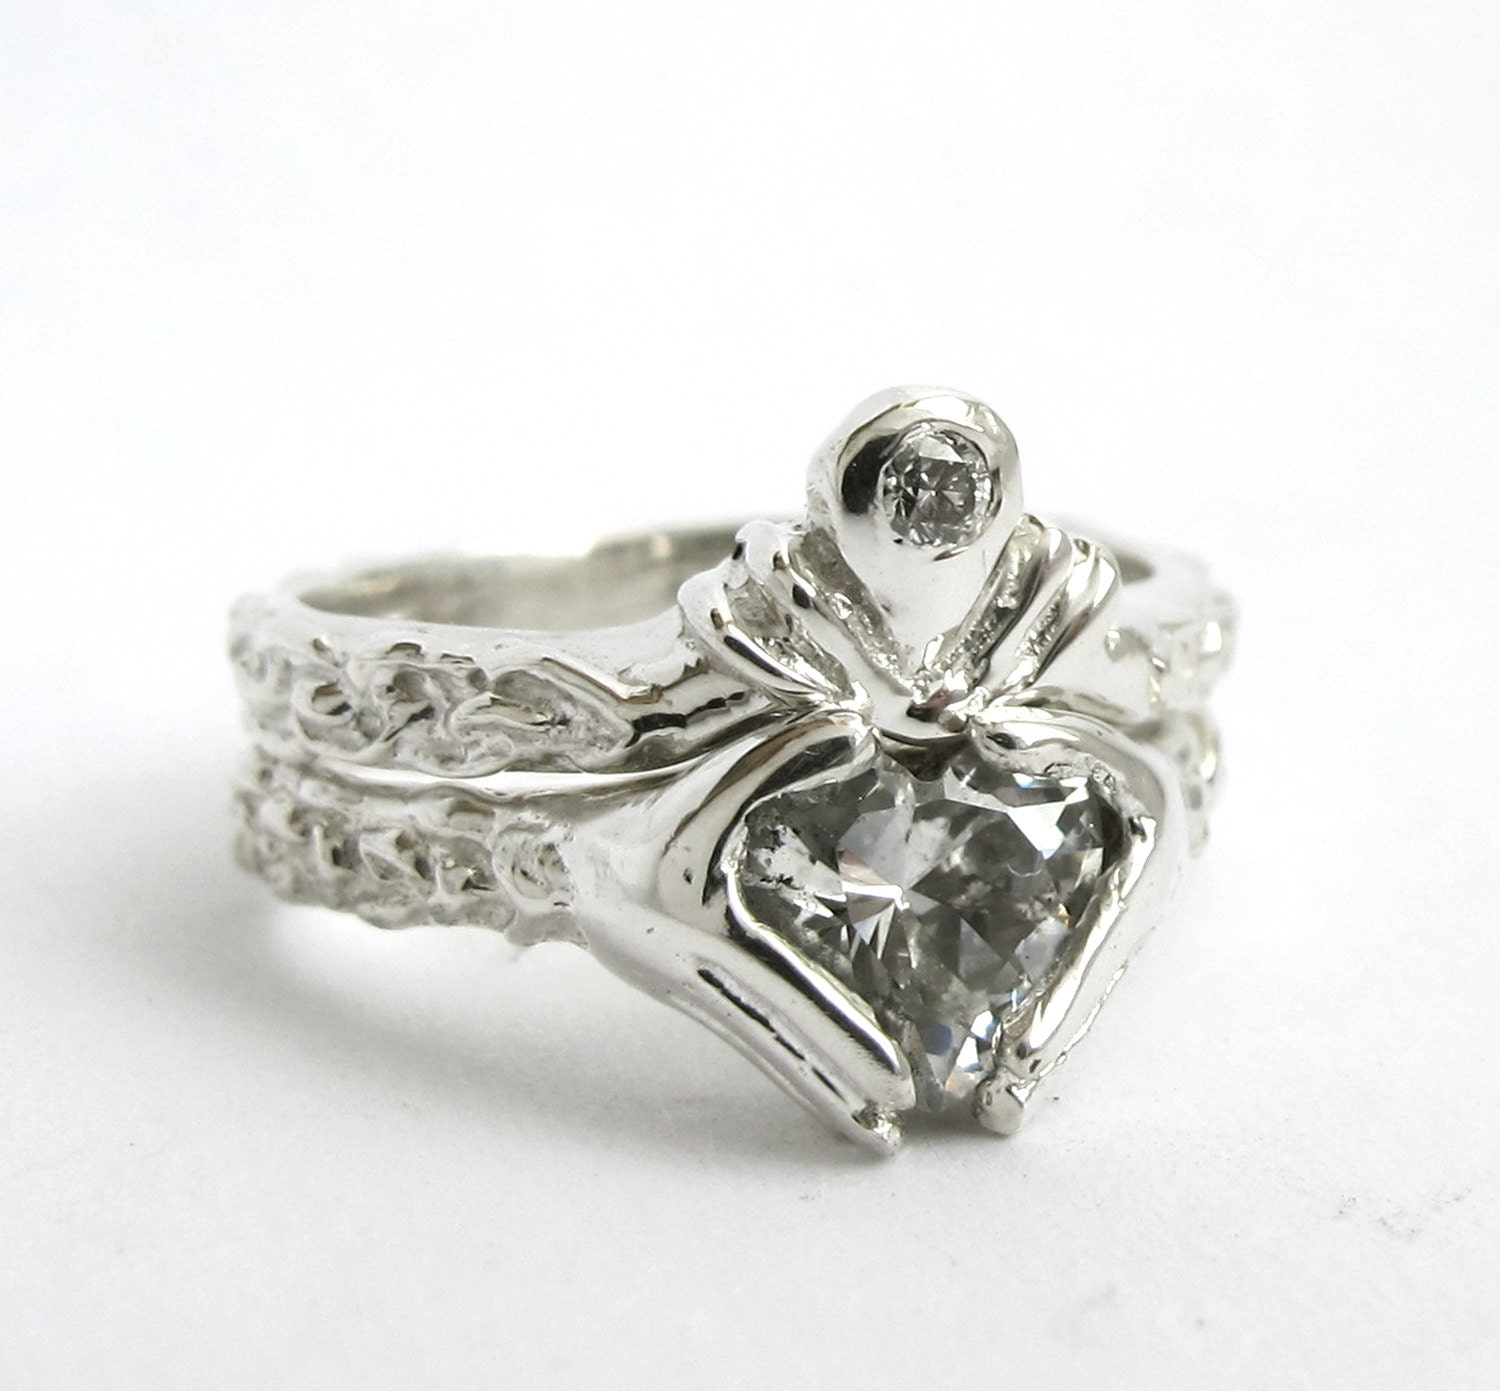 claddagh ring wedding set white gold and diamond blue topaz With claddagh ring wedding set